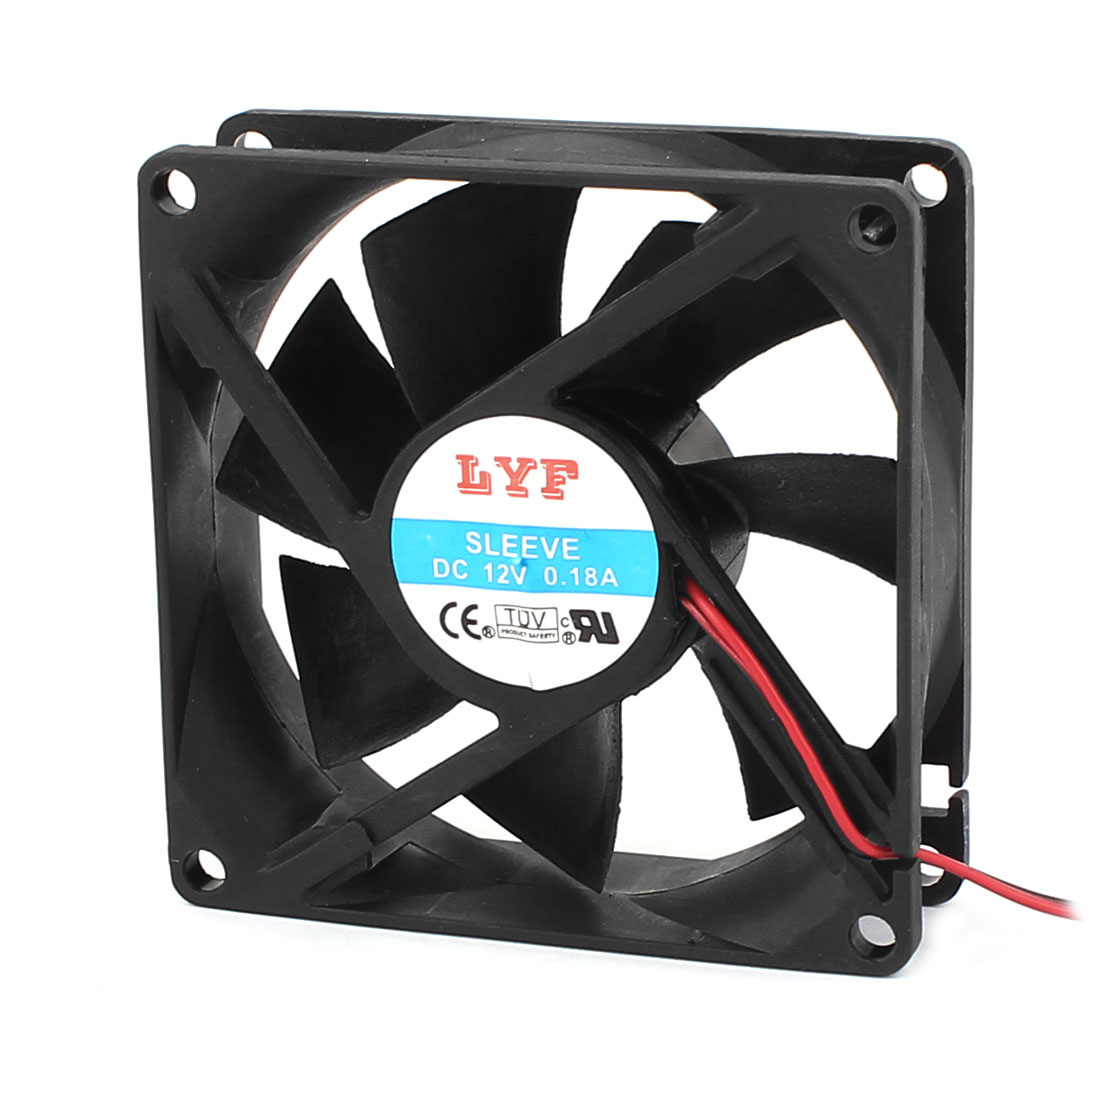 DC 12V 0.18A 4-Pin PC Computer Case CPU Cooler Cooling Fan Black 80x80mm